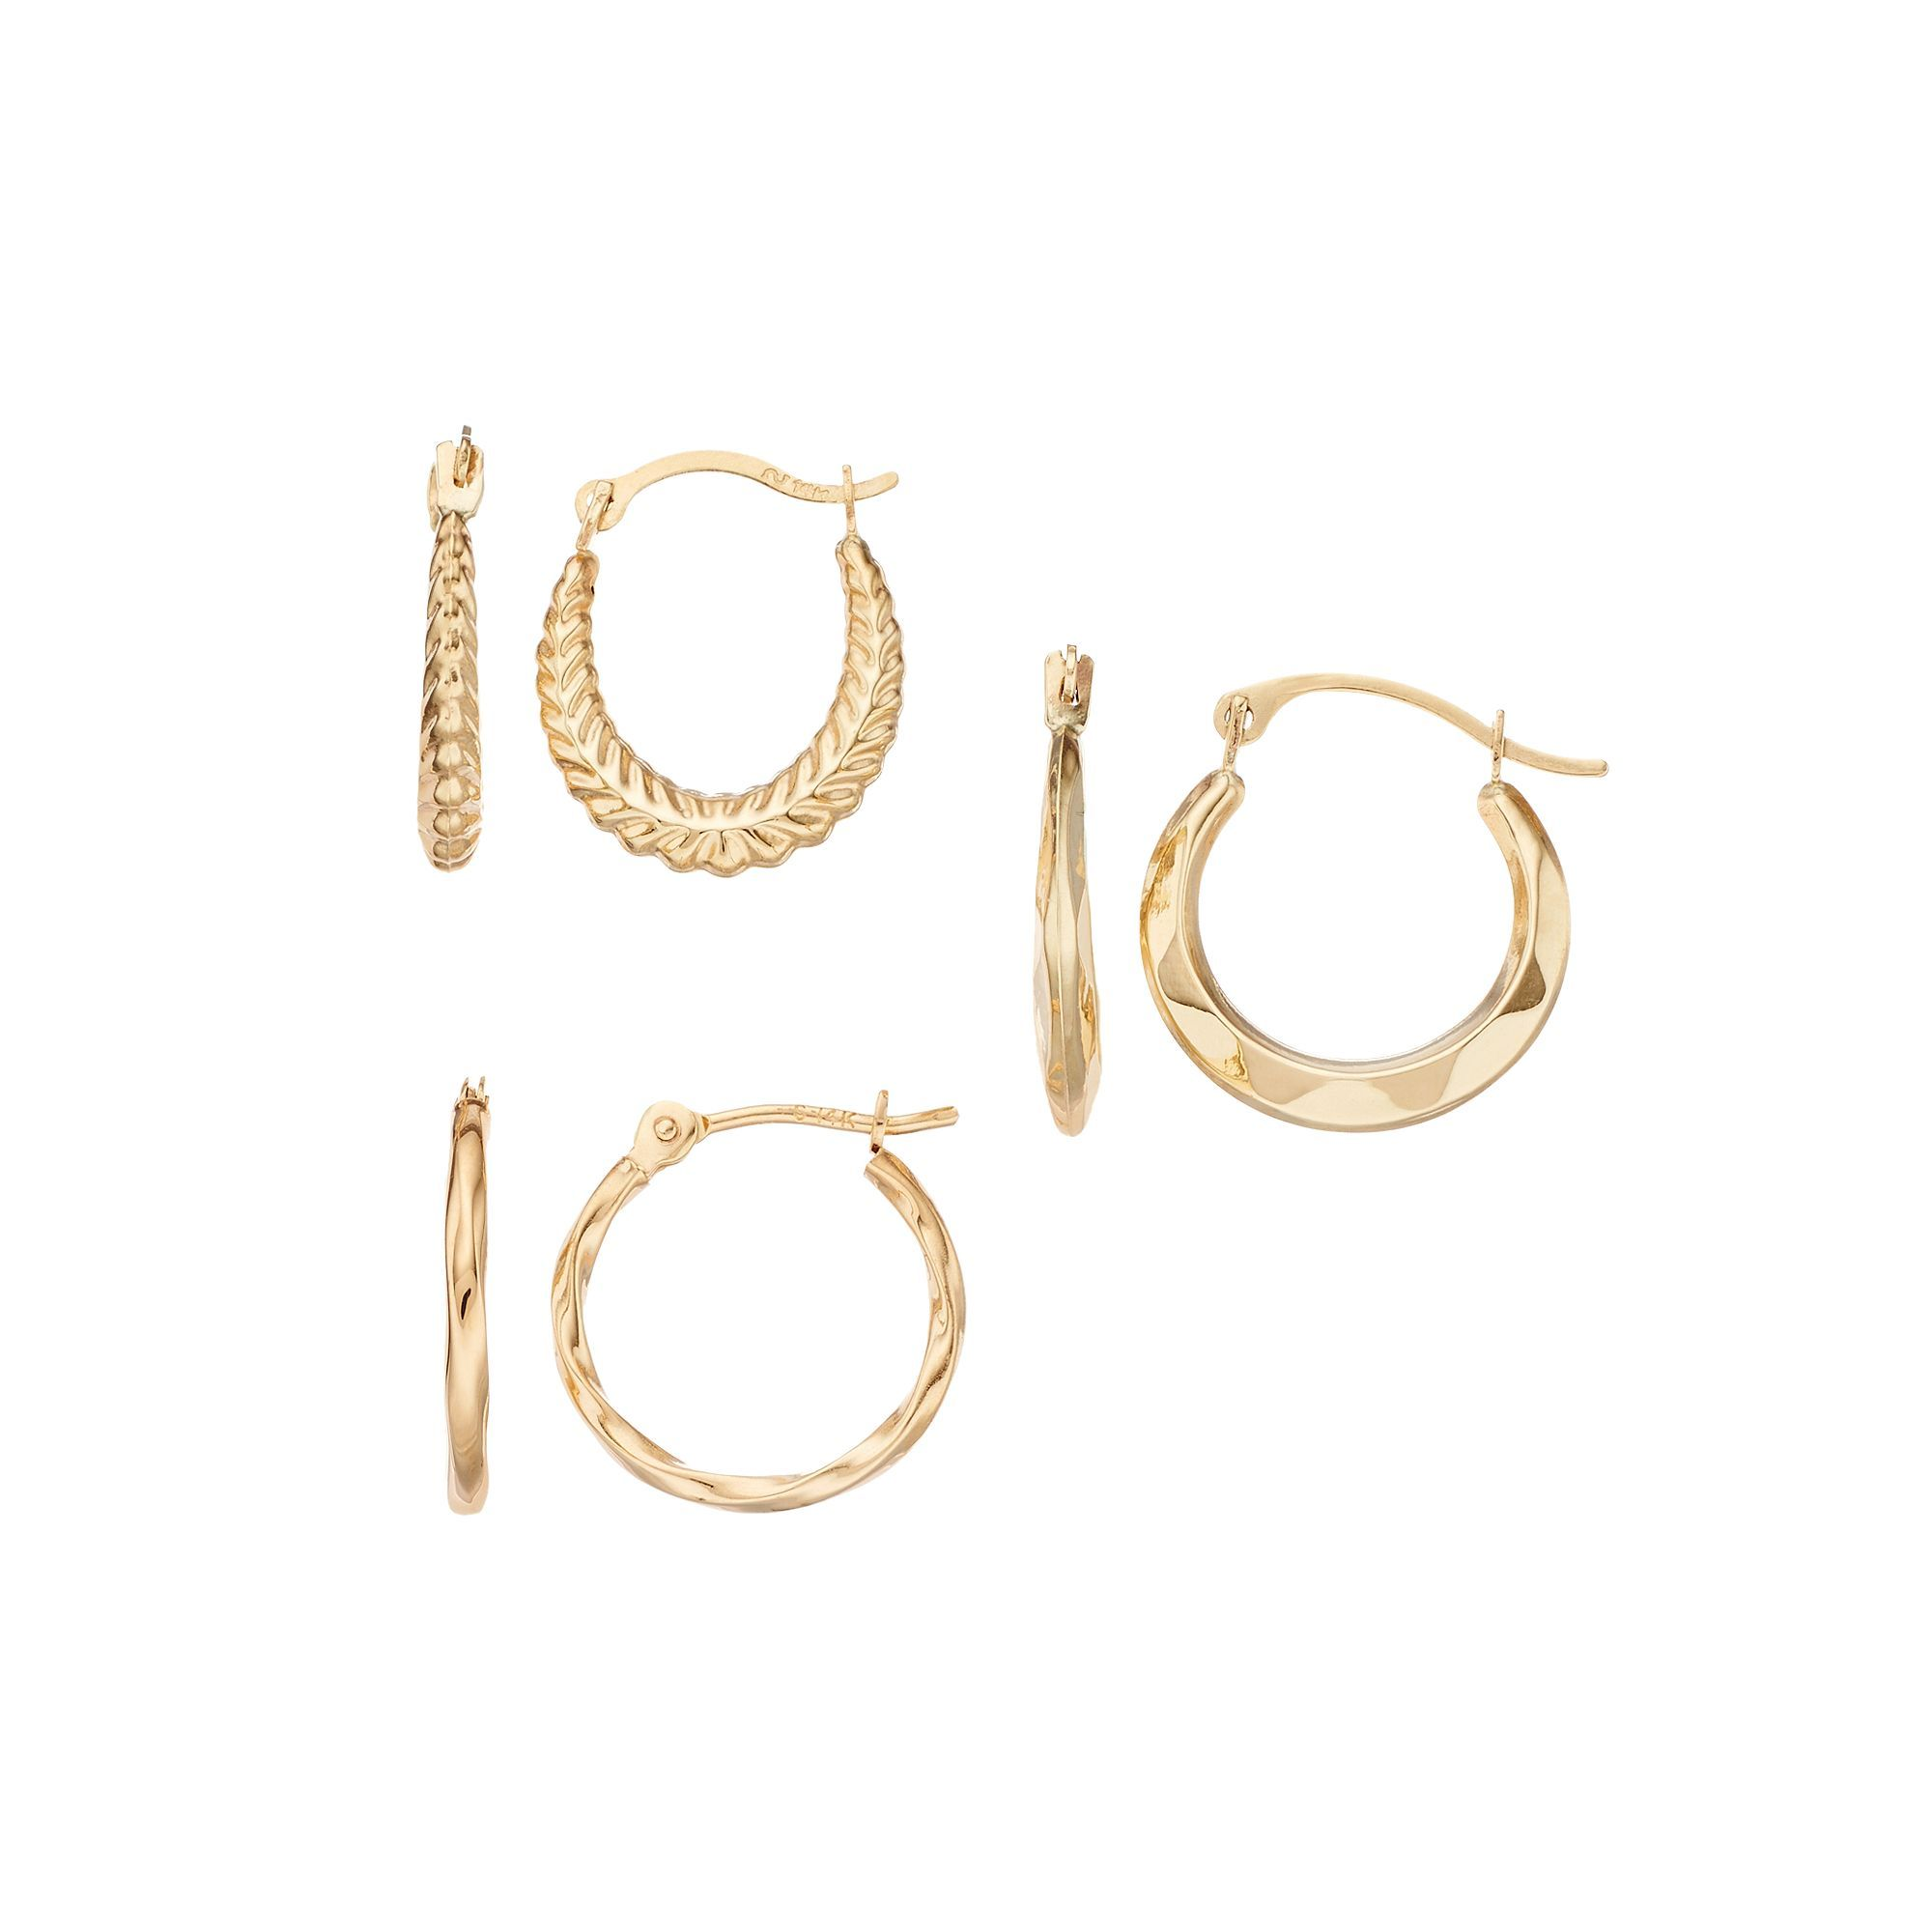 Yellow nose piercing  Kohlus k Gold Hoop Earring Set  Products